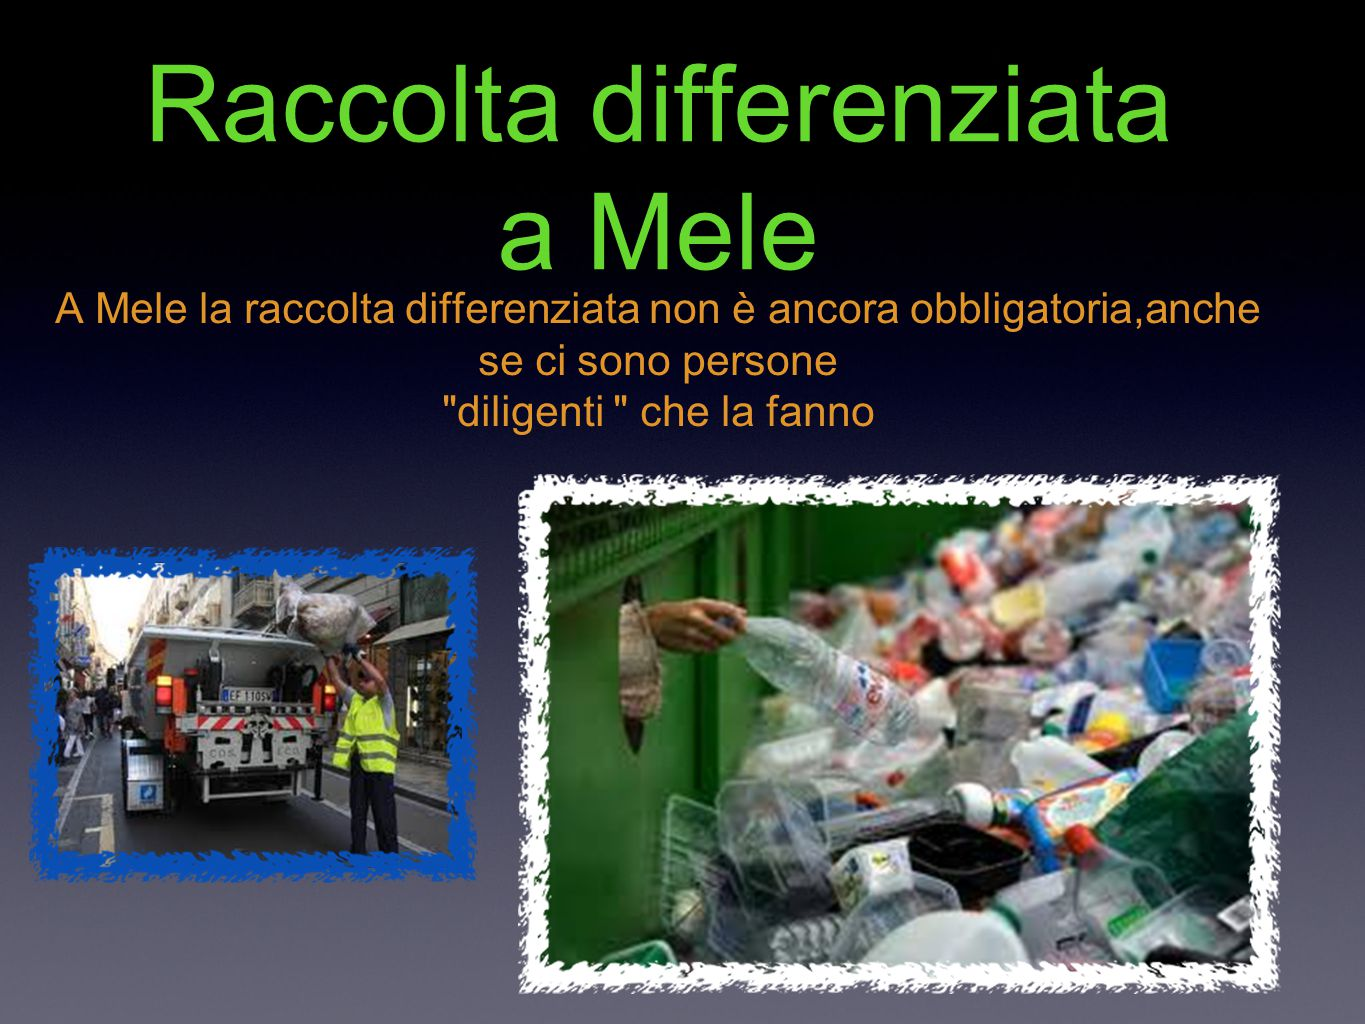 Raccolta differenziata a Mele